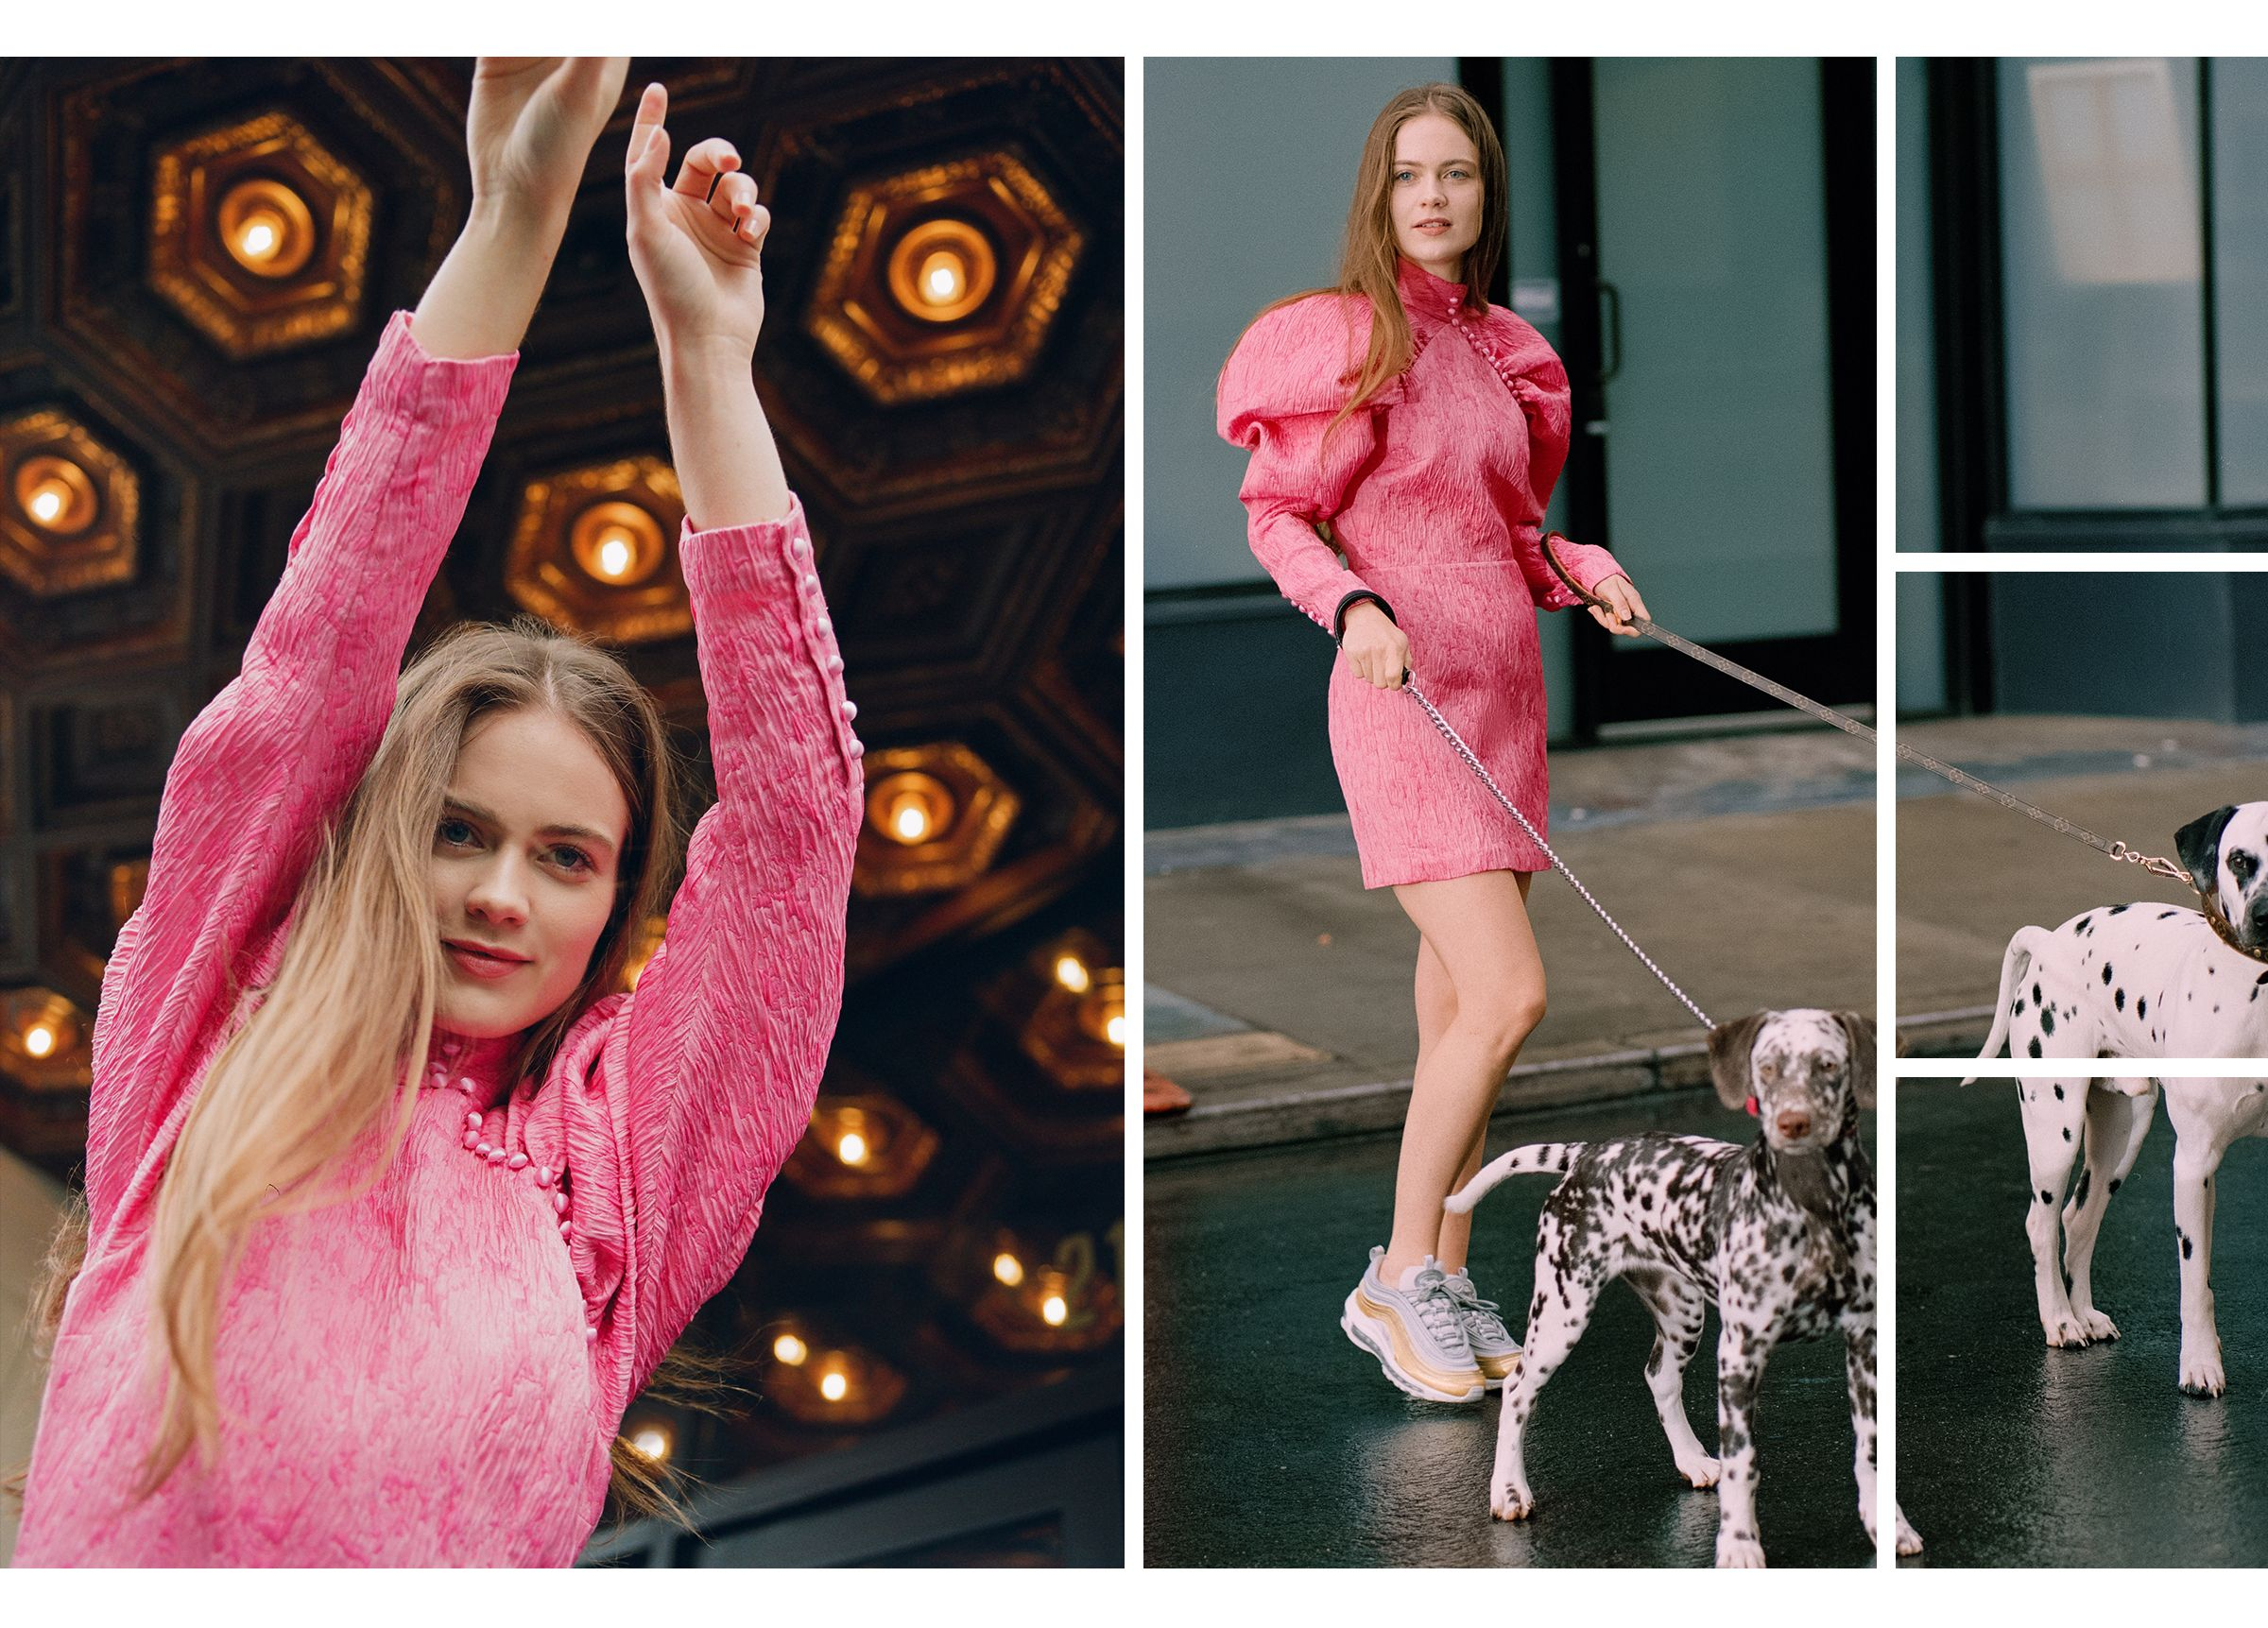 Hera Hilmar wearing pink jacquard dress by Rotate and Nike sneakers.